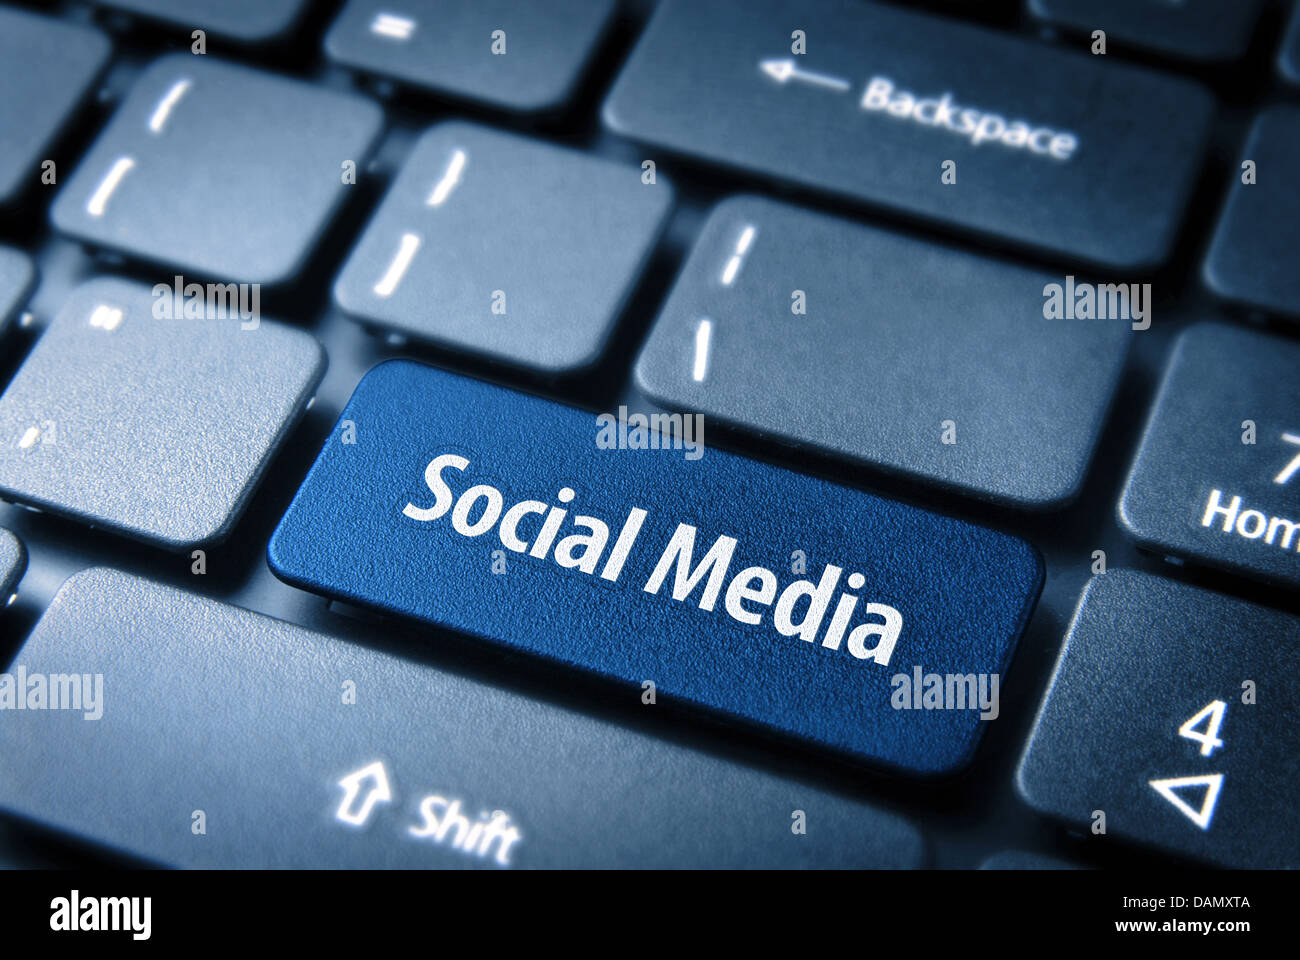 Close up key with social media icon on laptop keyboard. Included clipping path, so you can easily edit it. Stock Photo